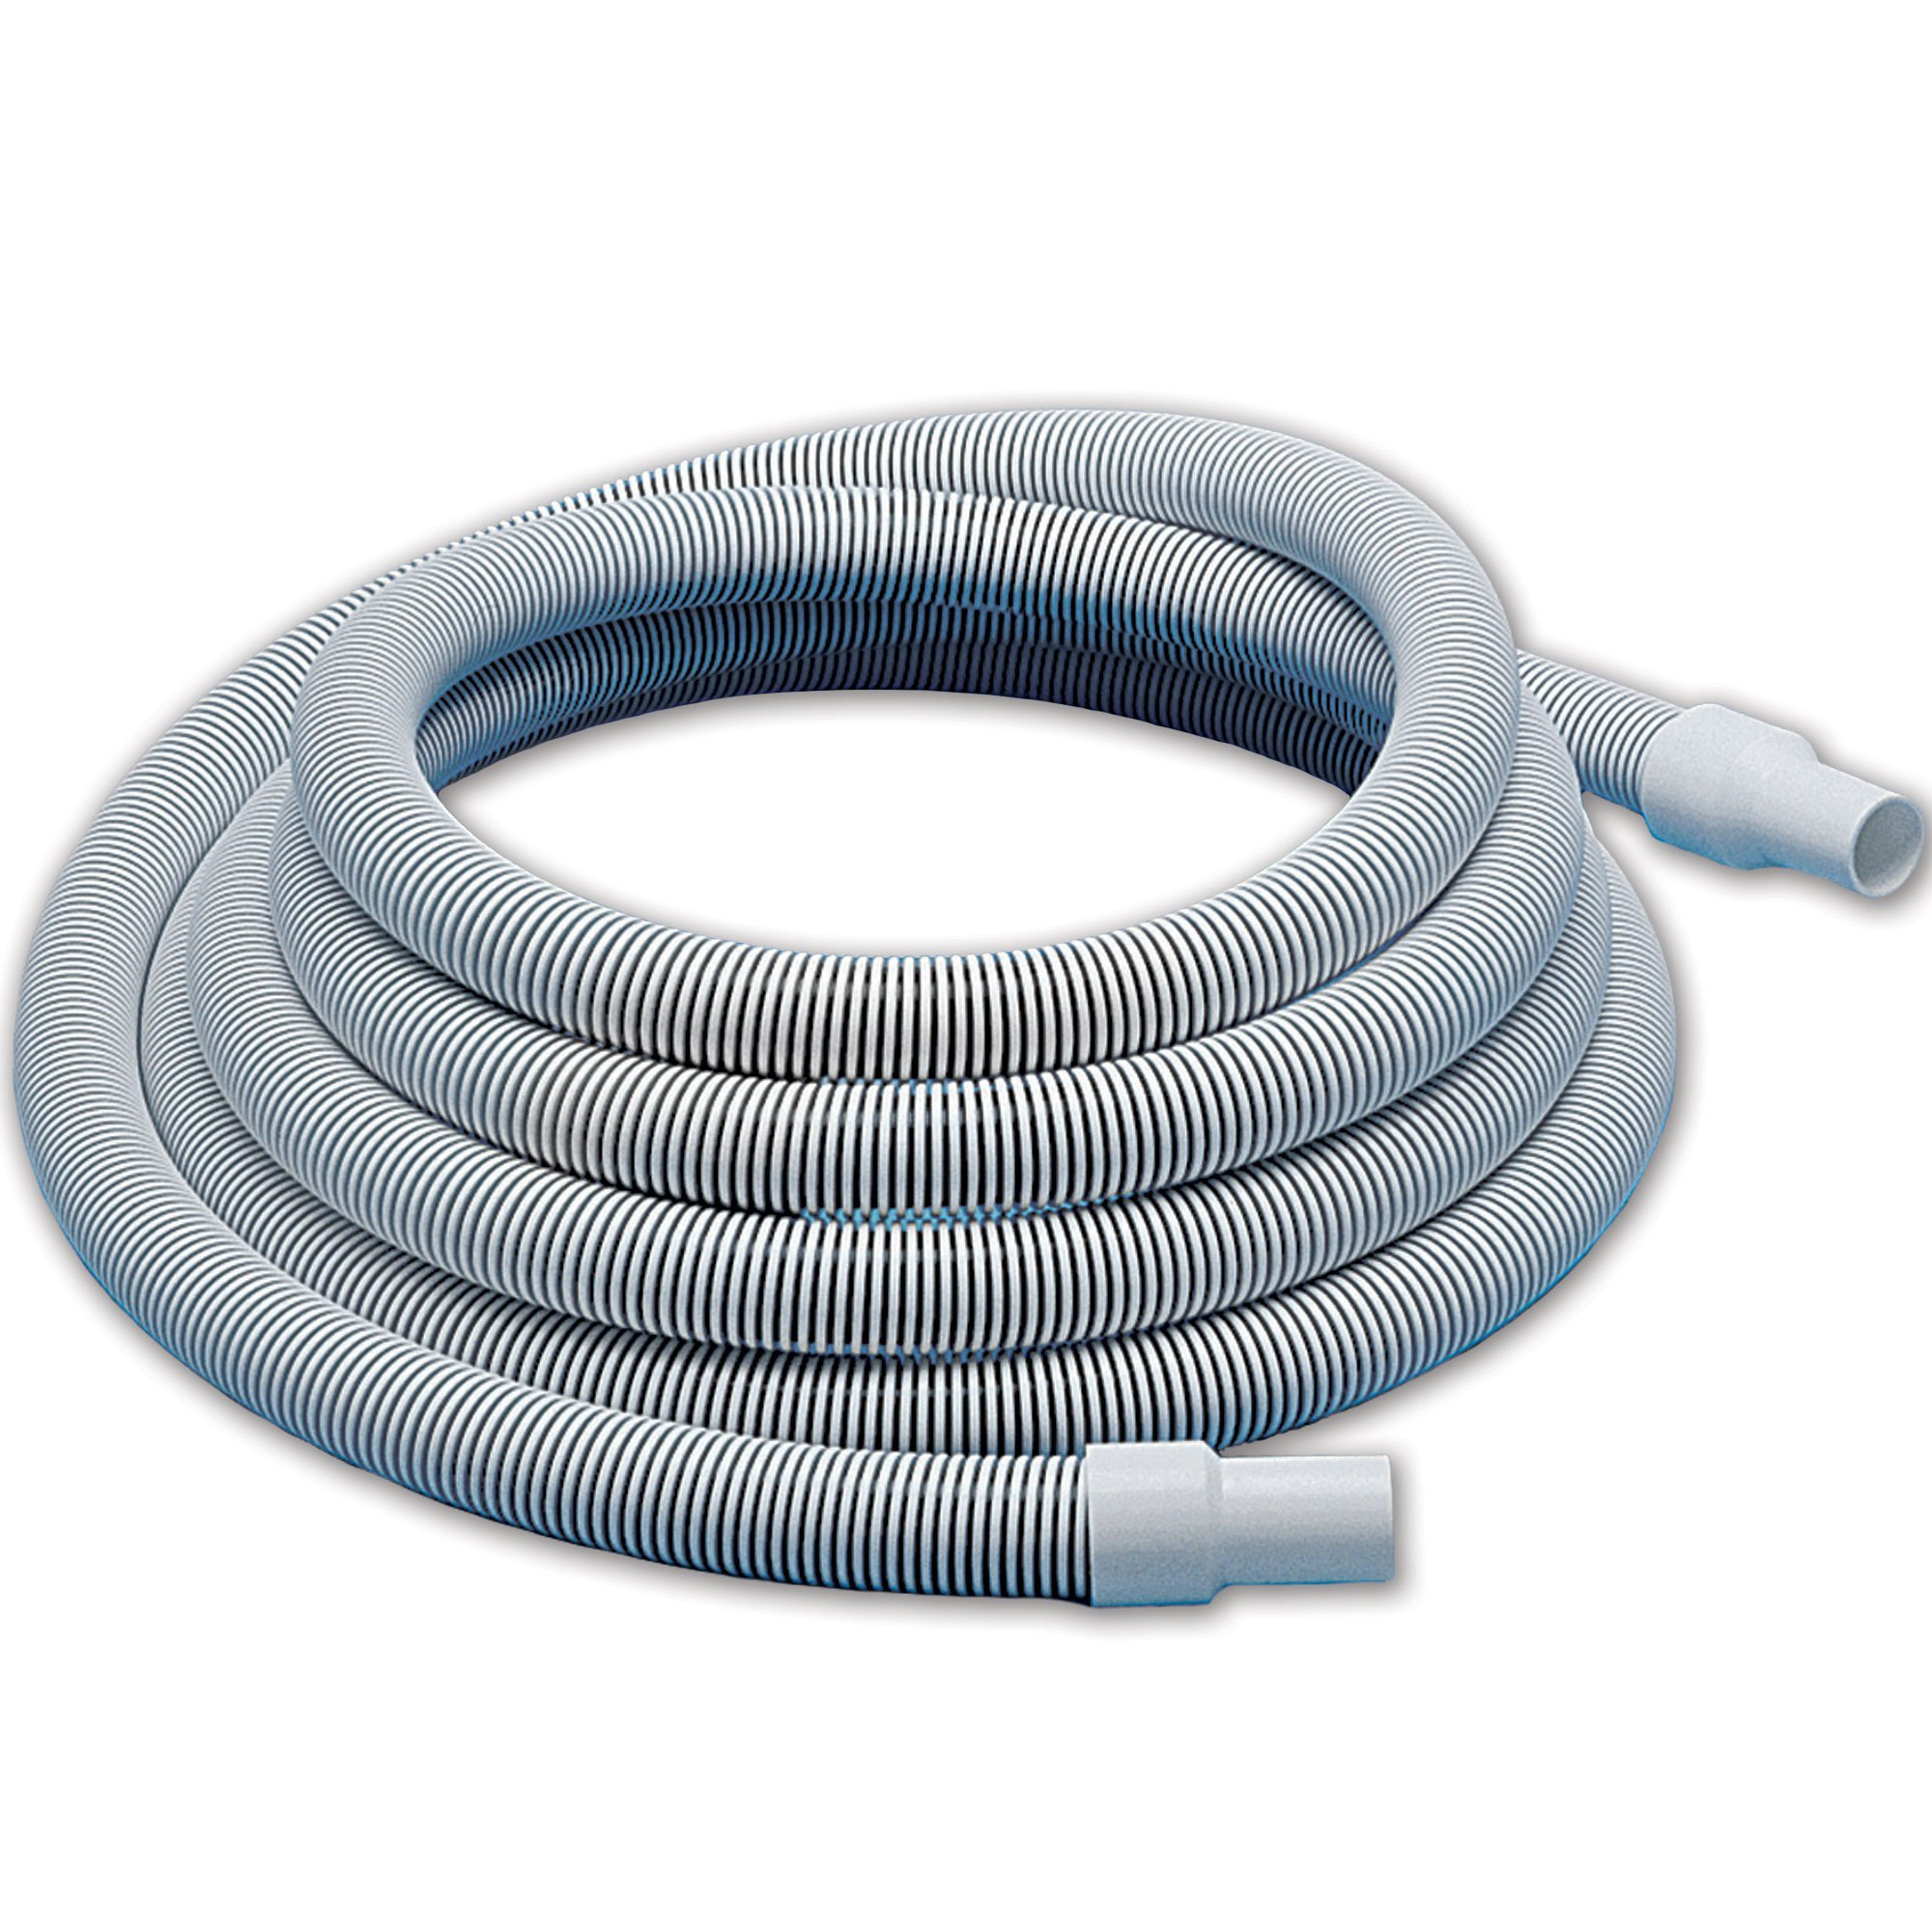 Commercial Grade Pool Vacuum Hose - 50 ft.